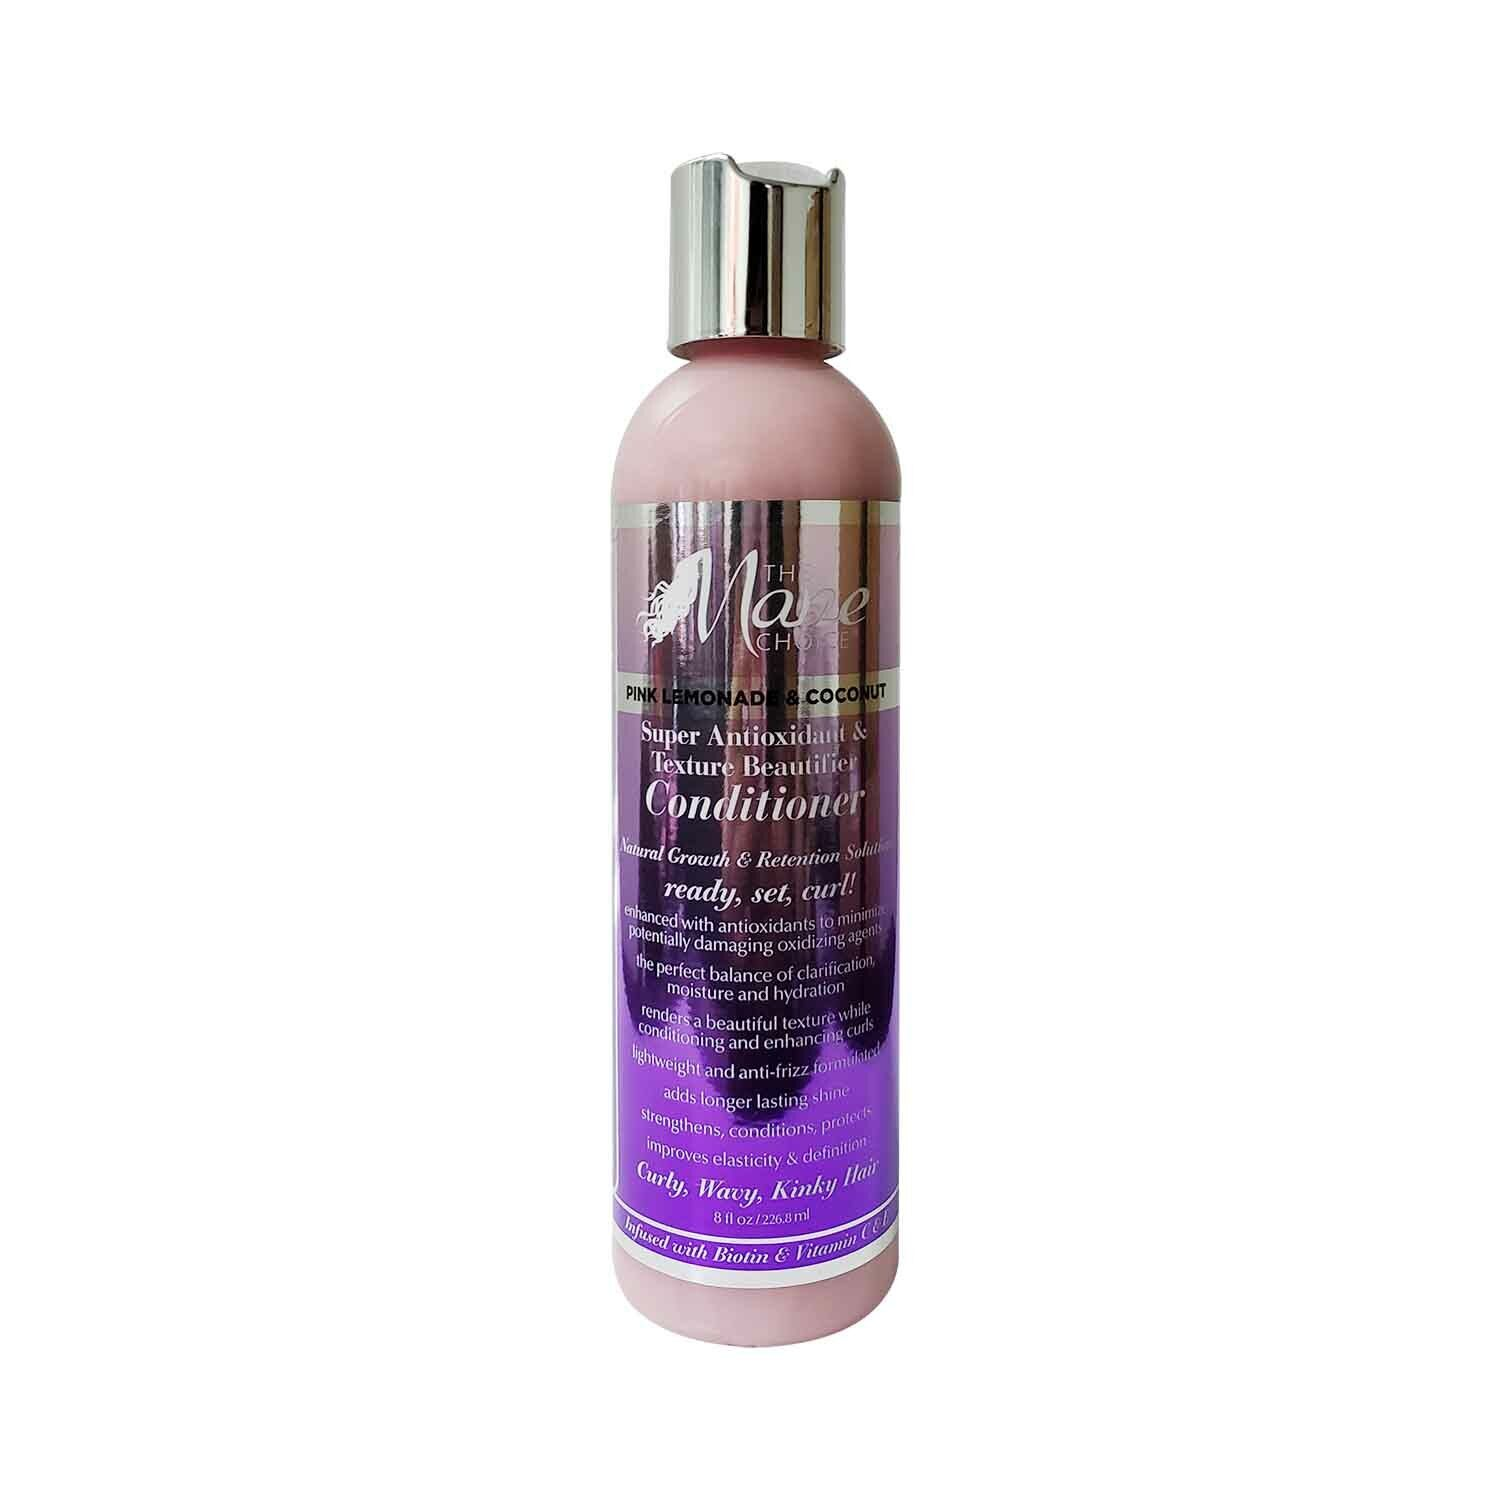 The Mane Choice Pink Lemonade & Coconut Super Antioxidant Conditioner 8 Oz. Hair Care & Styling